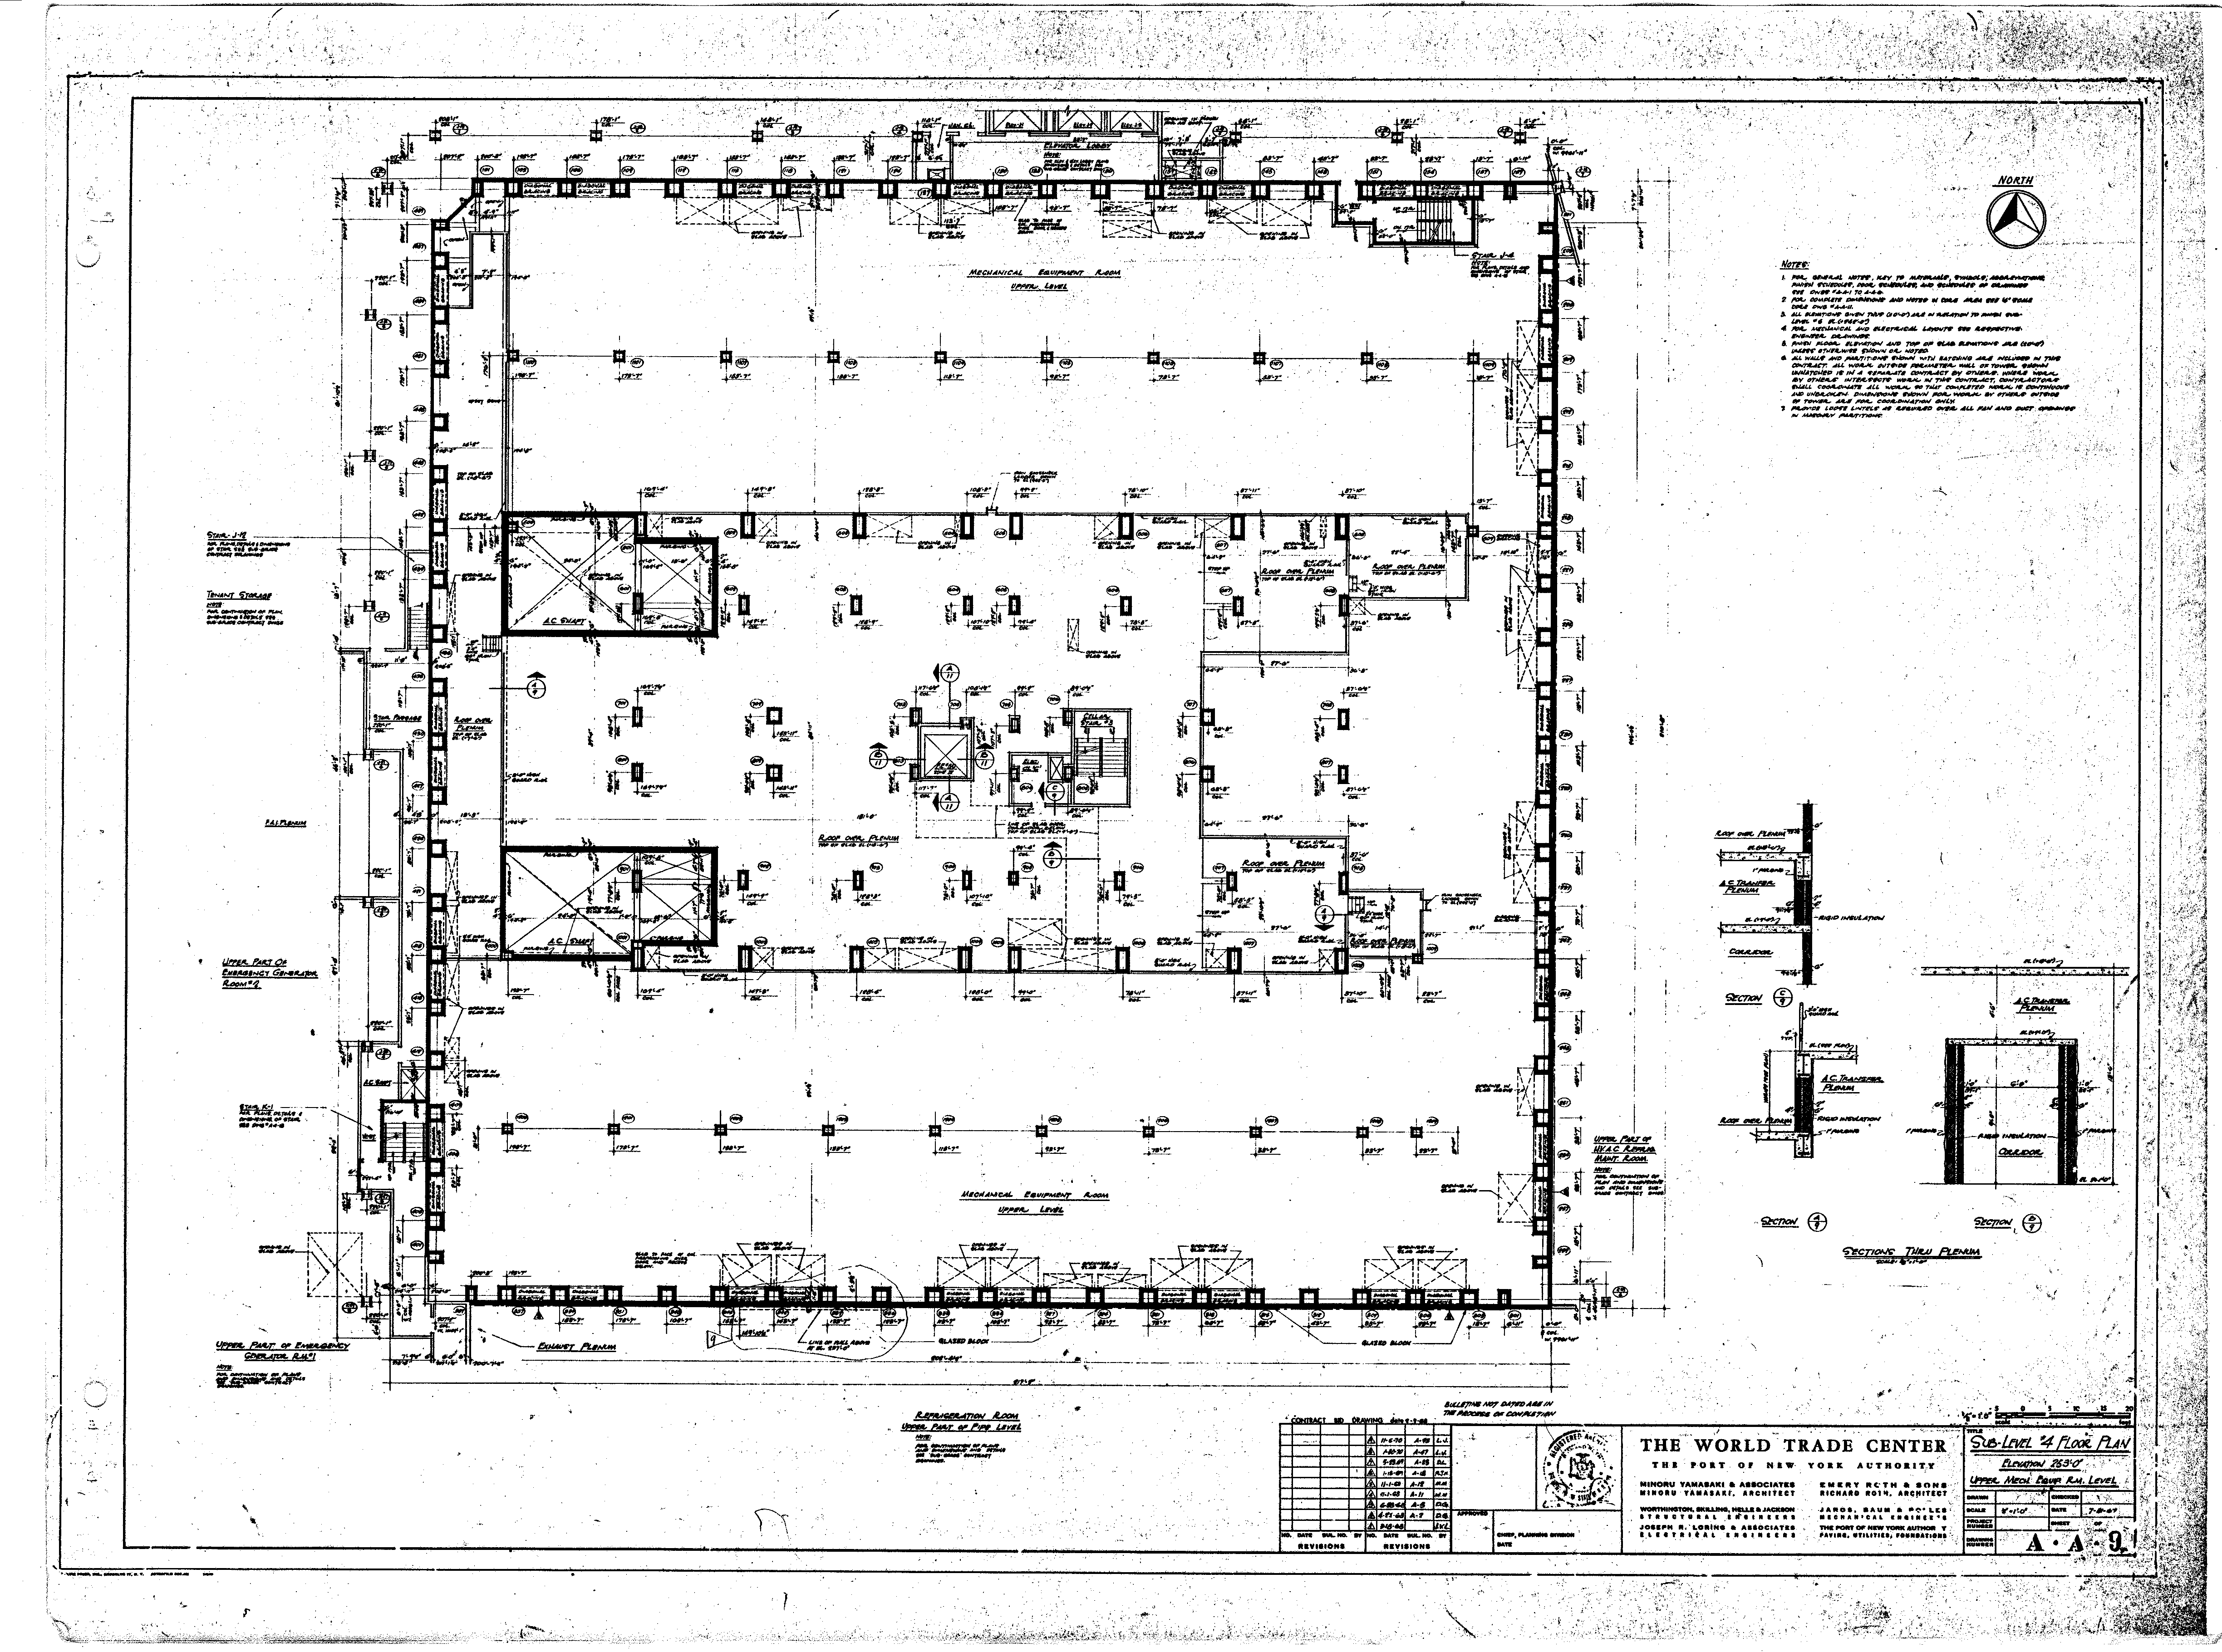 9 11 research north tower blueprints north tower blueprints malvernweather Gallery